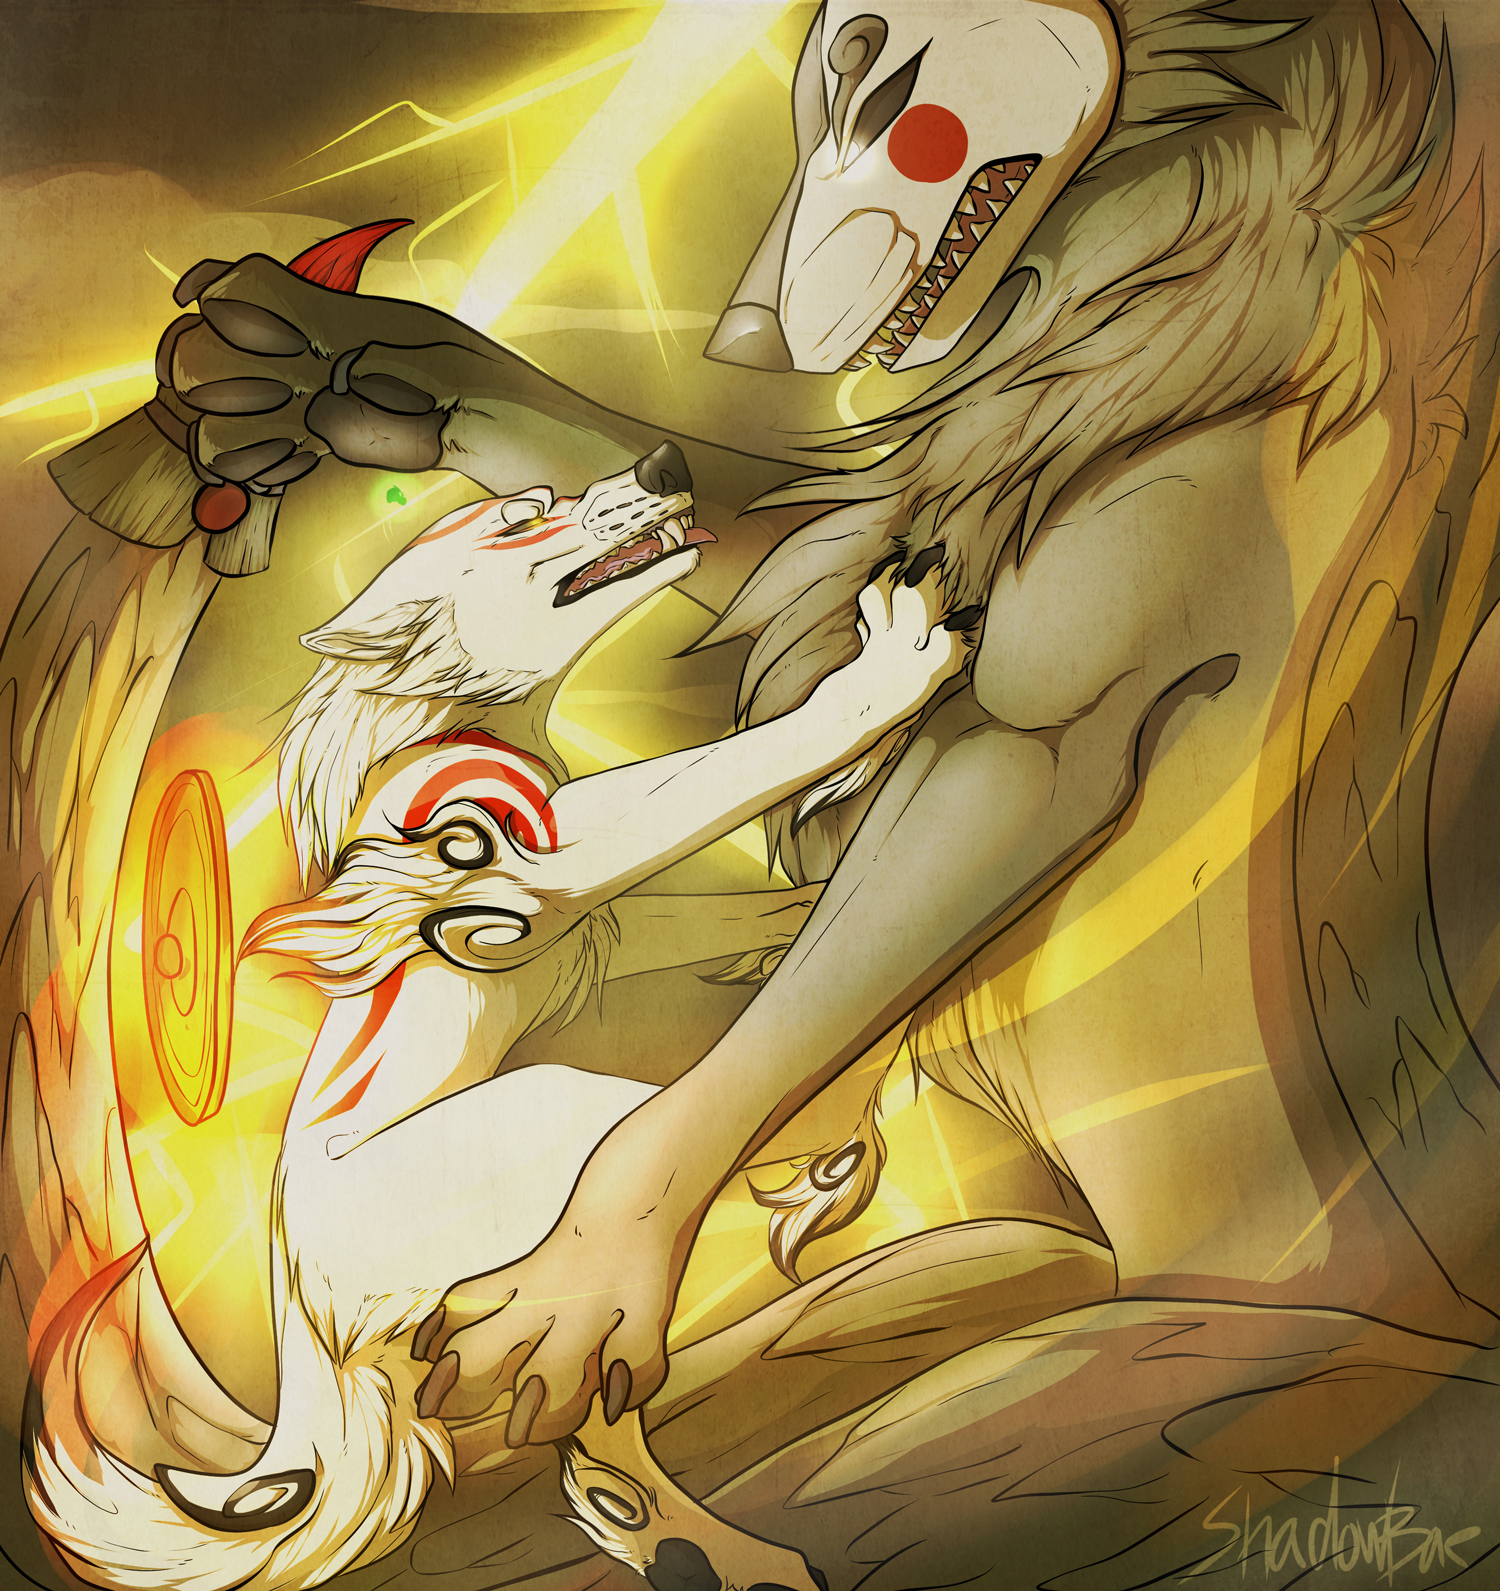 Ammy physically attacking a much larger Ninetails, teeth bared, flames and lightning flashing.